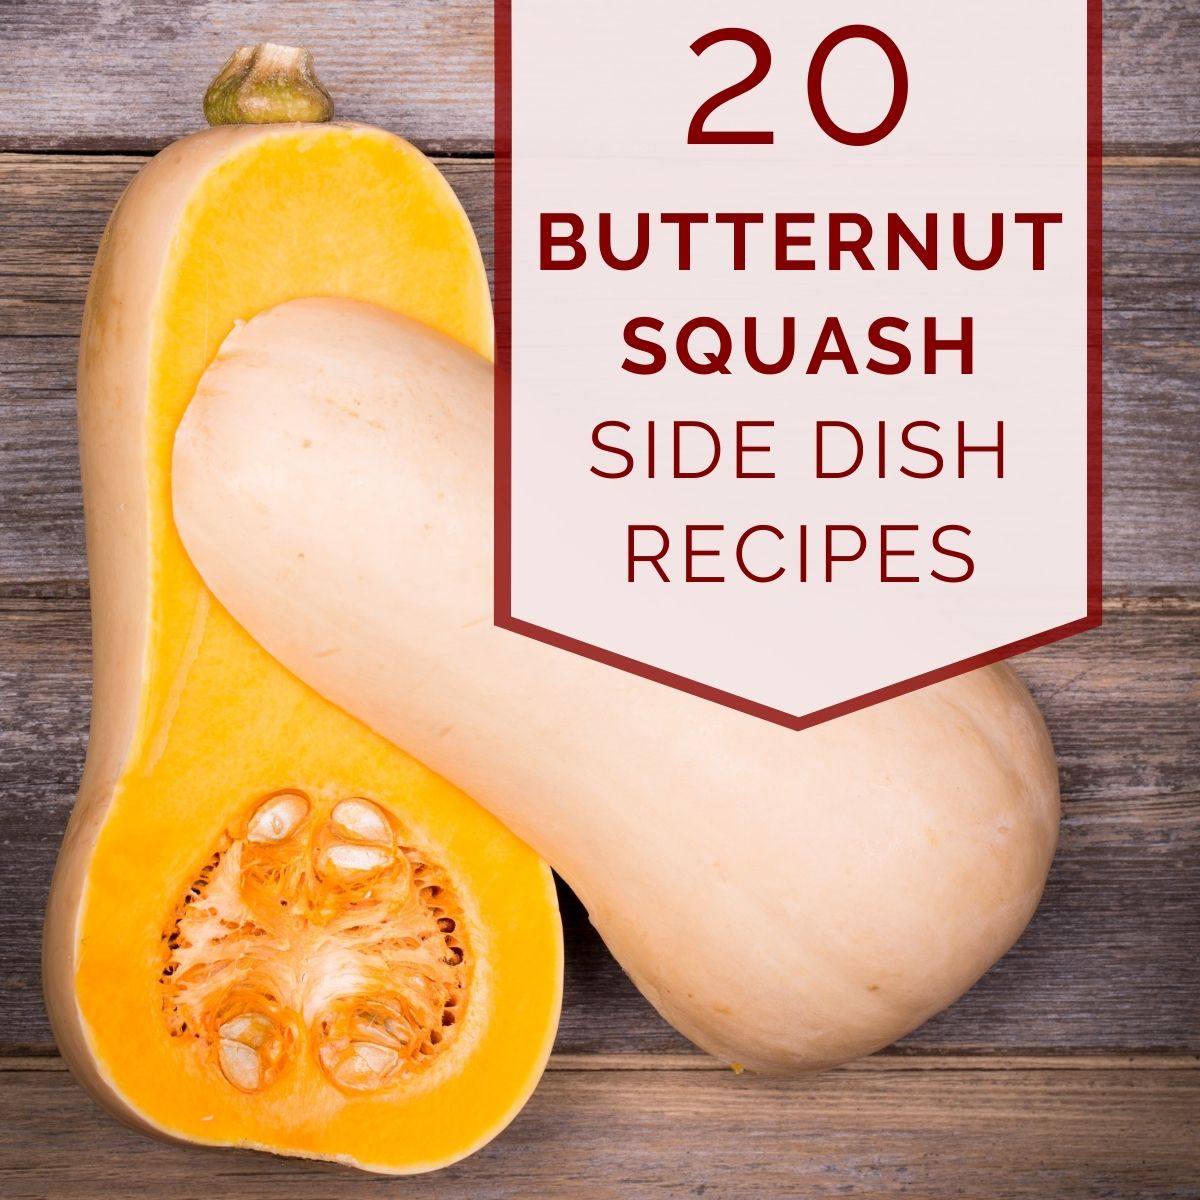 butternut squash recipes graphic